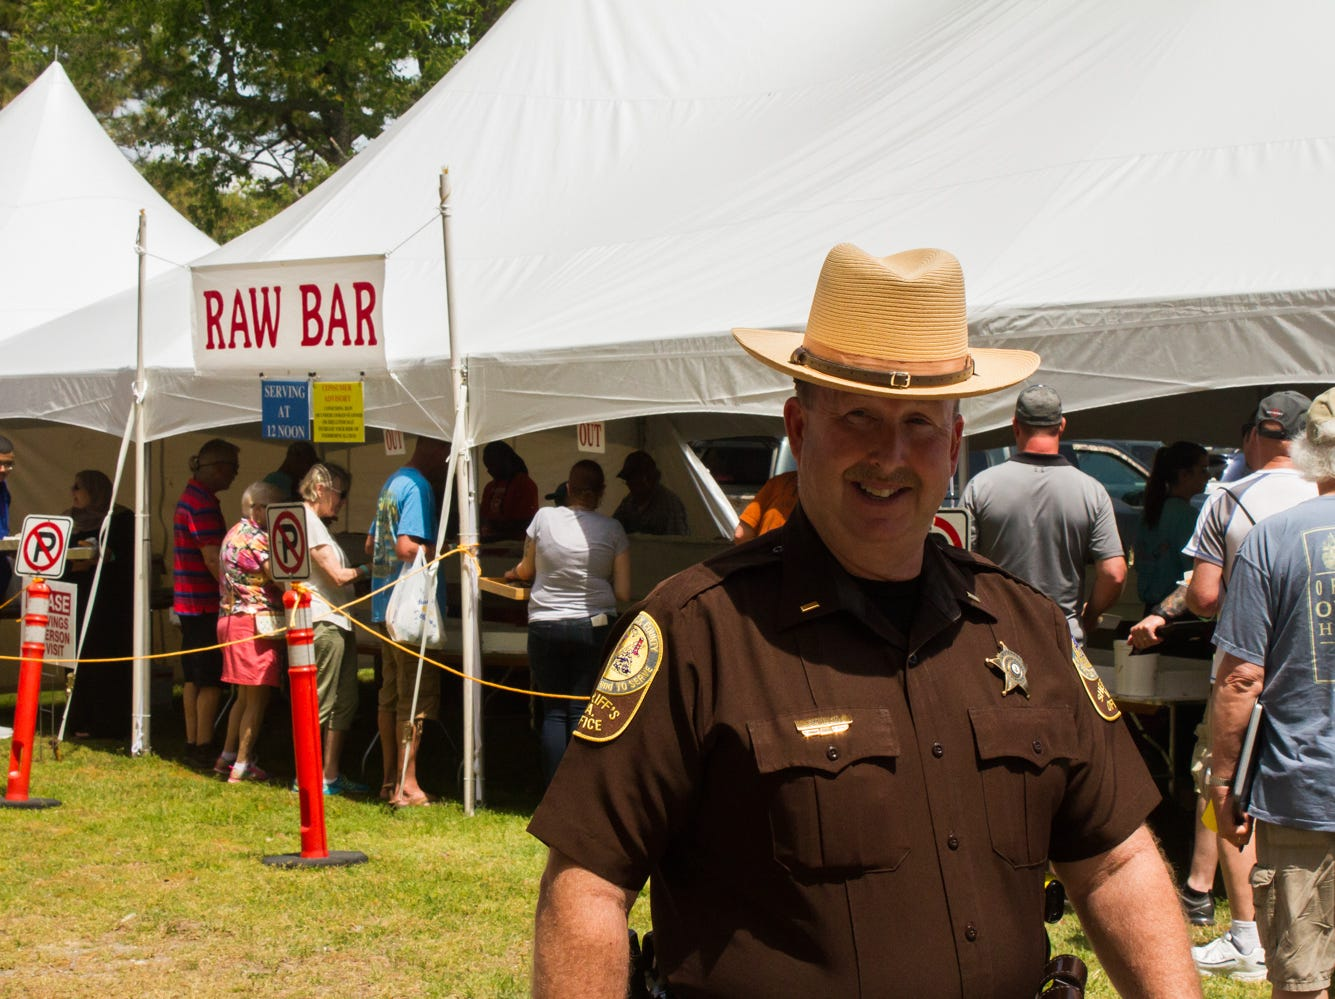 Lt. David Smullin of Accomack County Sheriff's Office helps maintain order within festival grounds on Saturday, May 4, 2019 at the Chincoteague Seafood Festival in Chincoteague, VA.